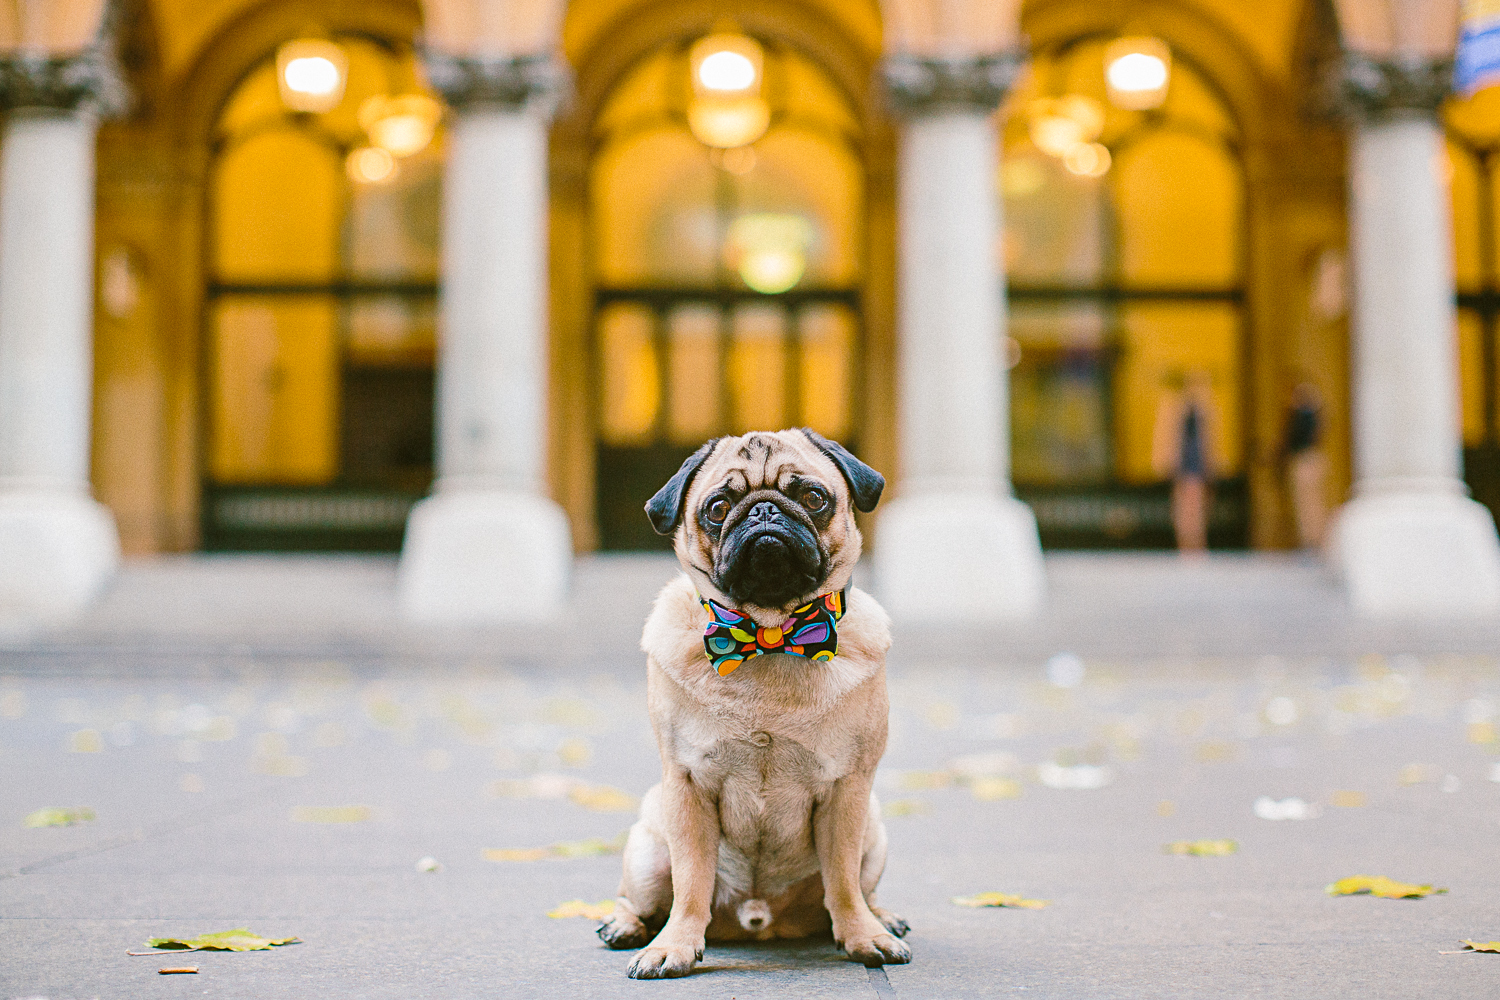 twoguineapigs_pet_photography_oh_jaffa_pugs_bow_ties_collars_SIGNATURE_1500-12.jpg